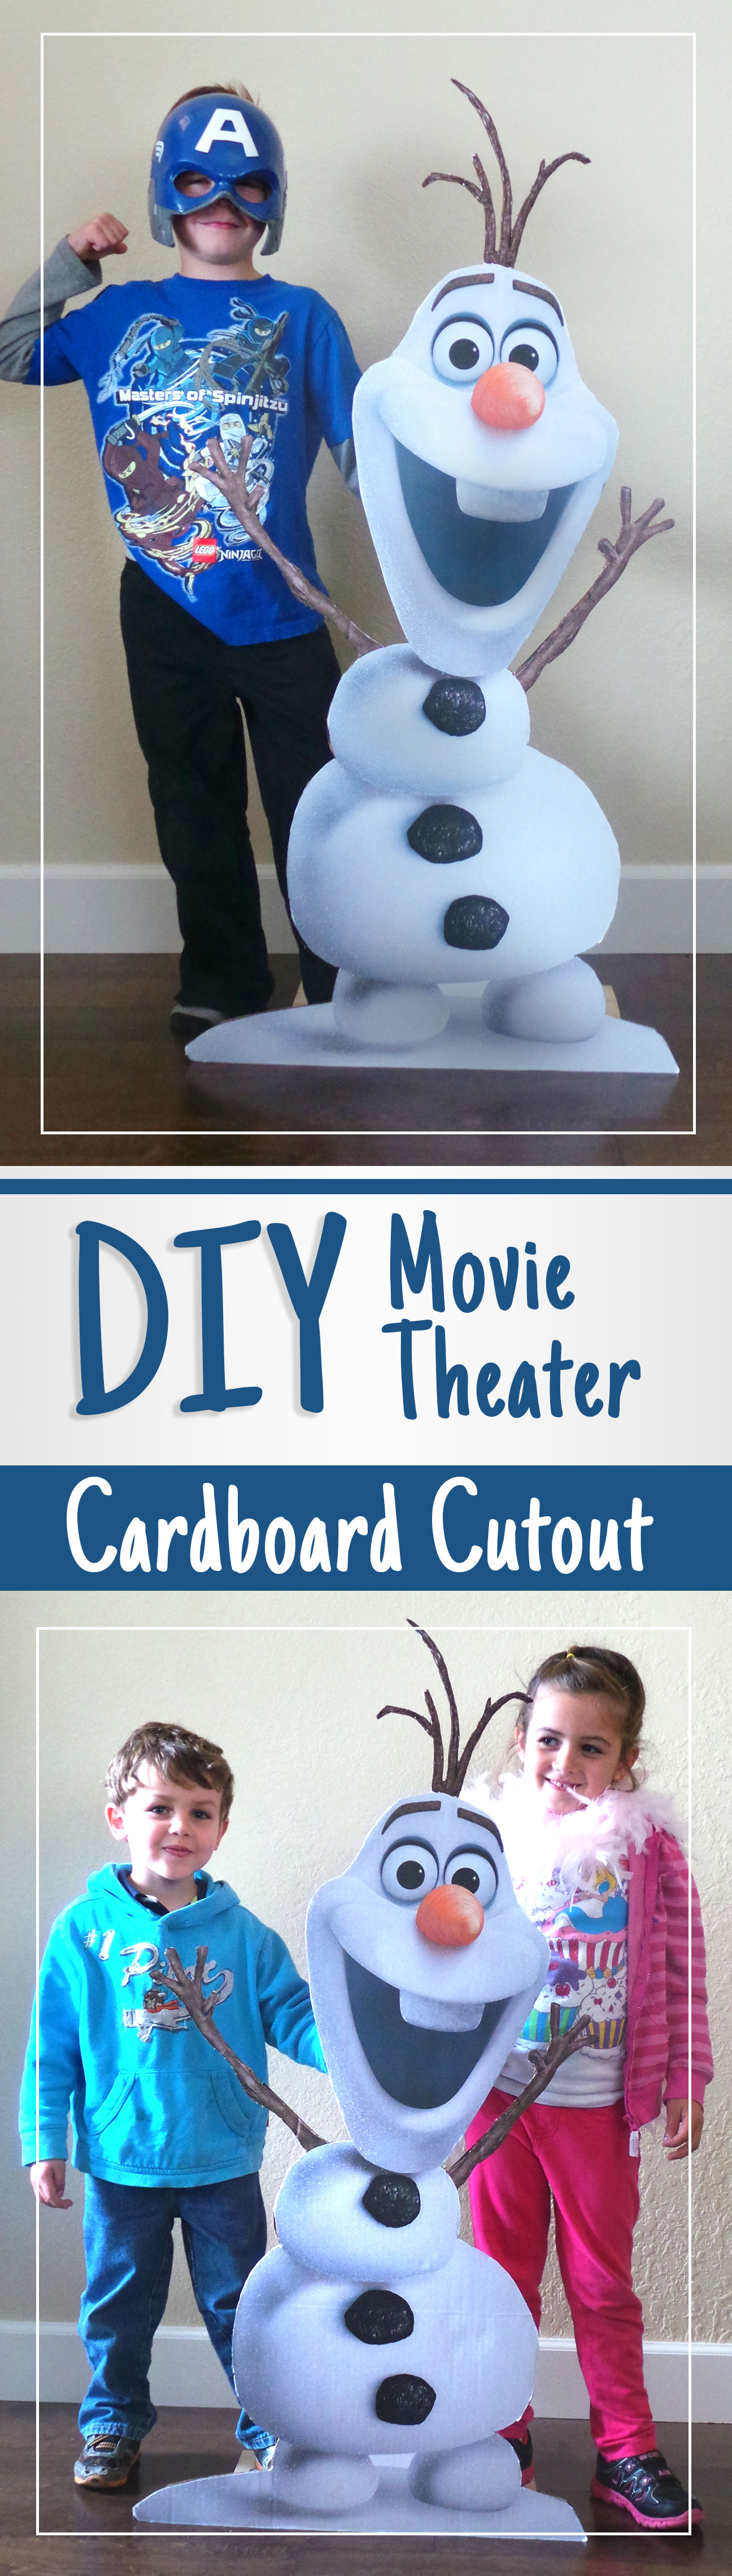 DIY movie theater cutouts